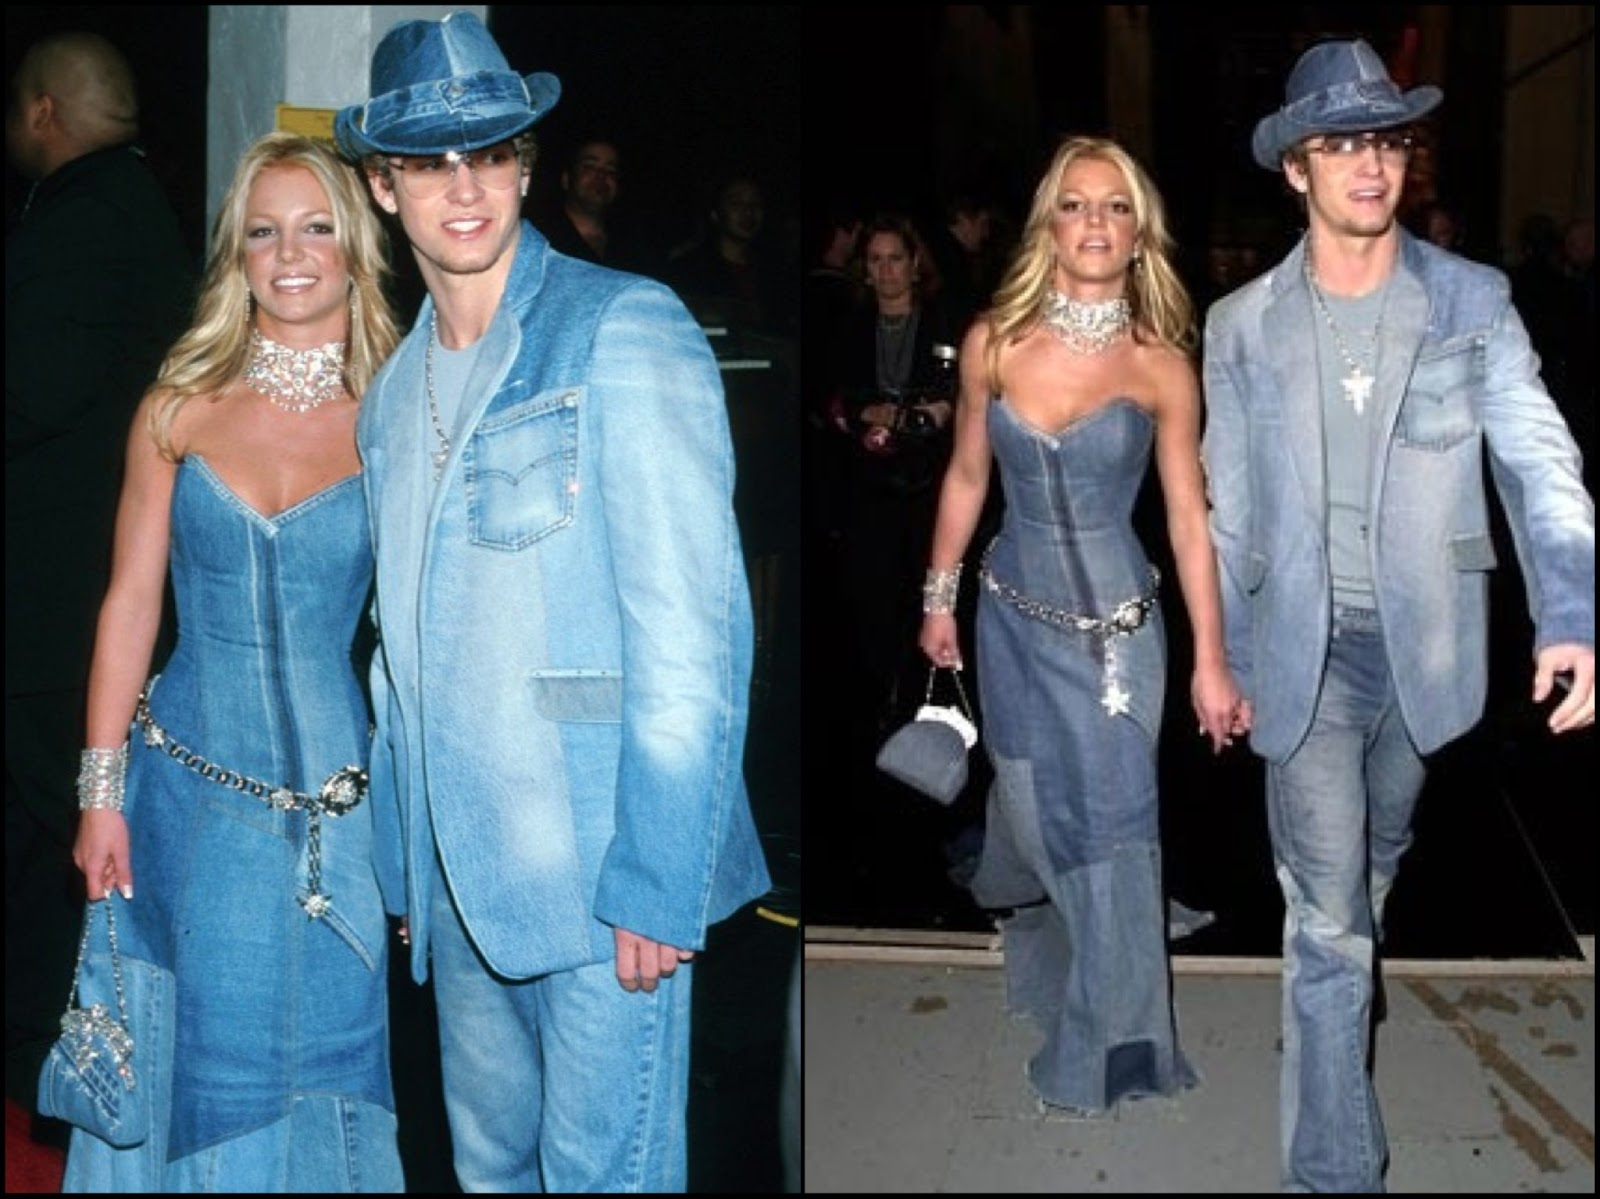 Britney and Justin in denim at 2001 AMA